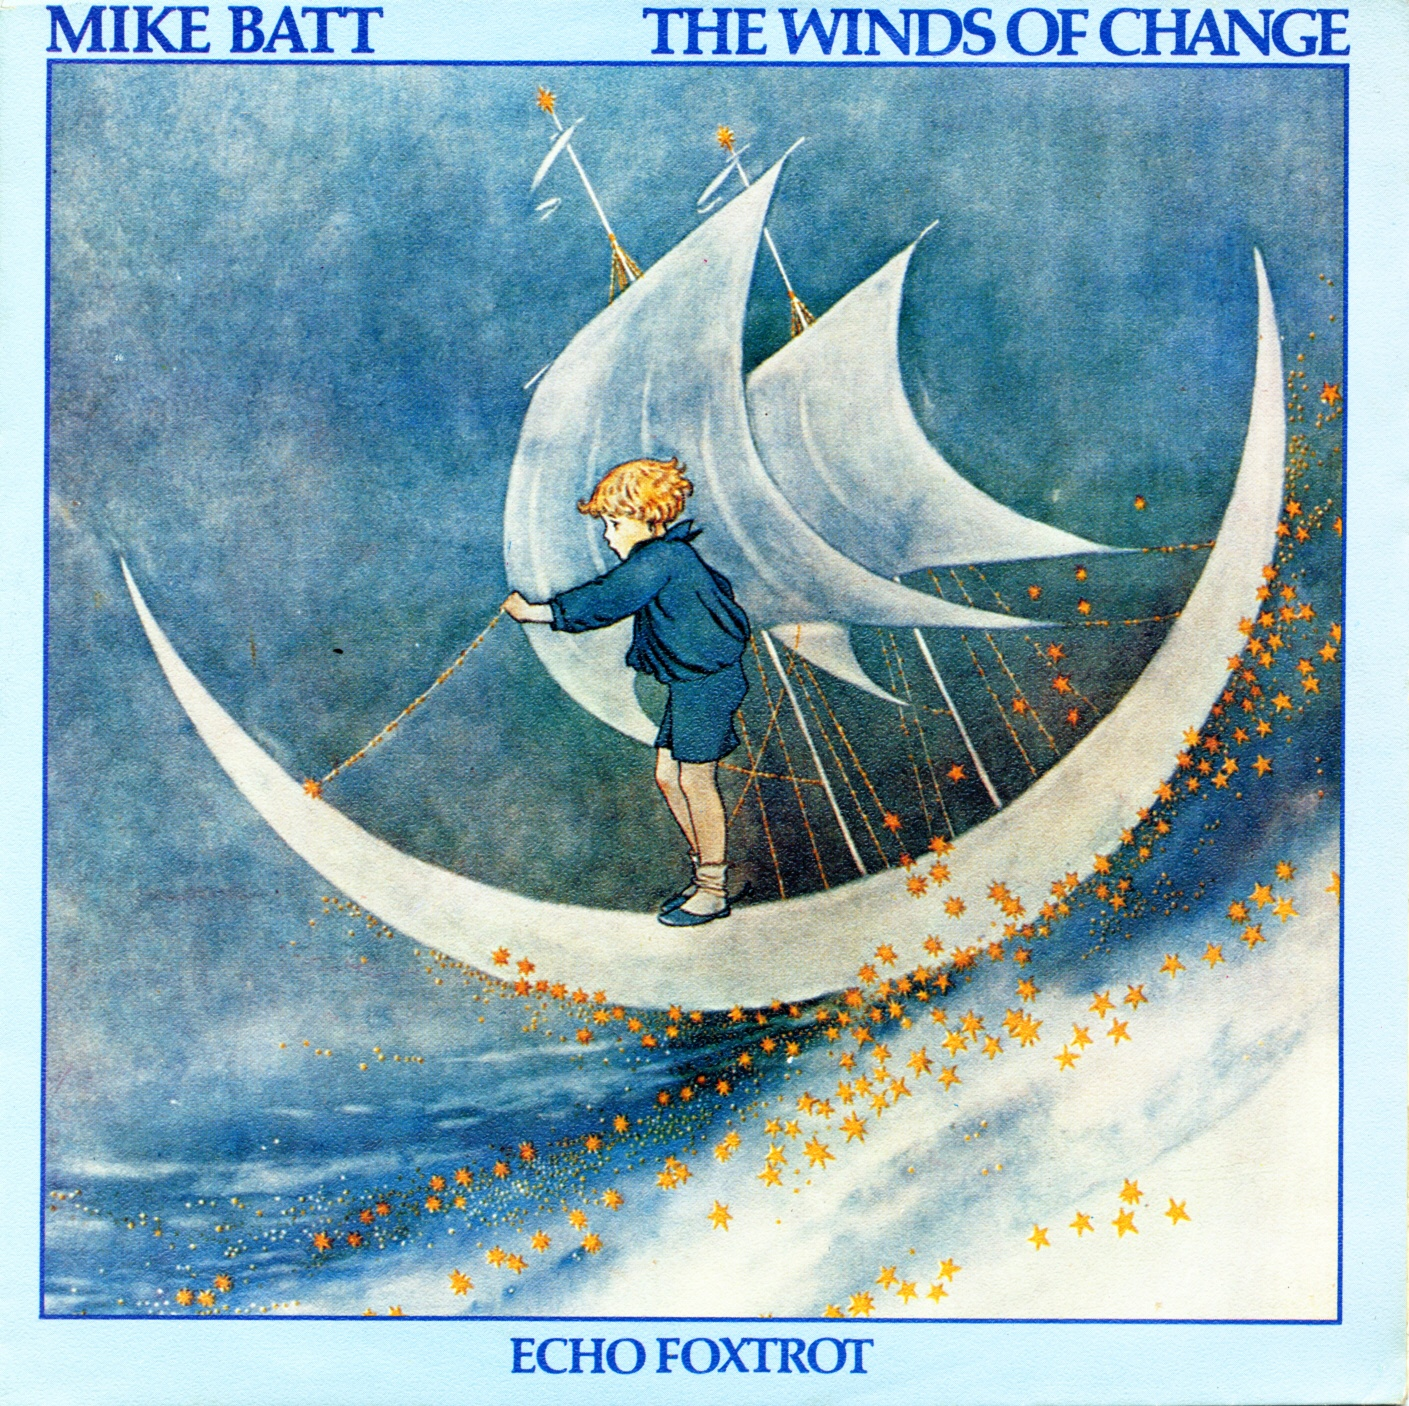 Cover: The winds of change, Mike Batt